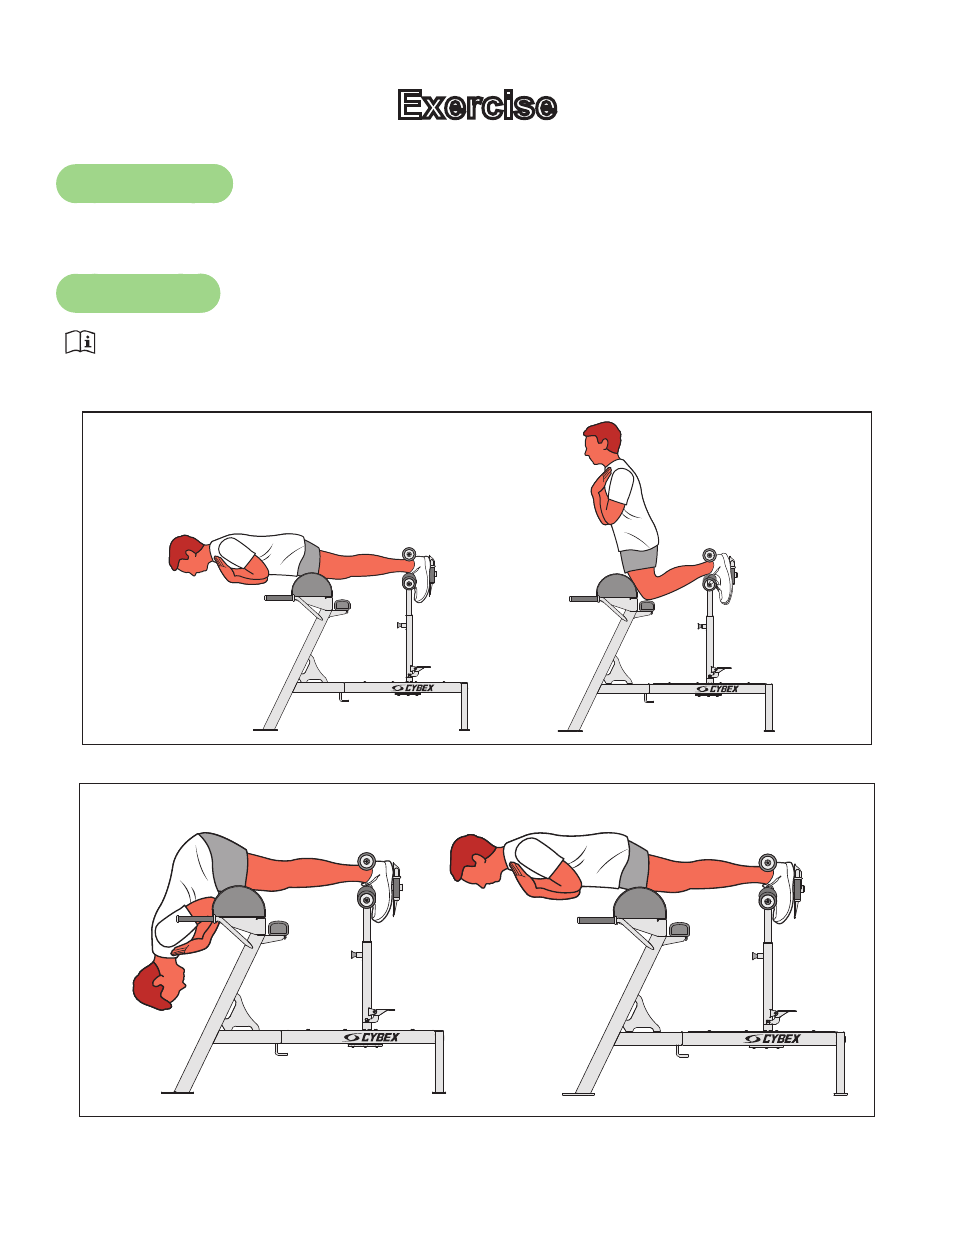 background image. 10. Cybex Owners Manual. Exercise